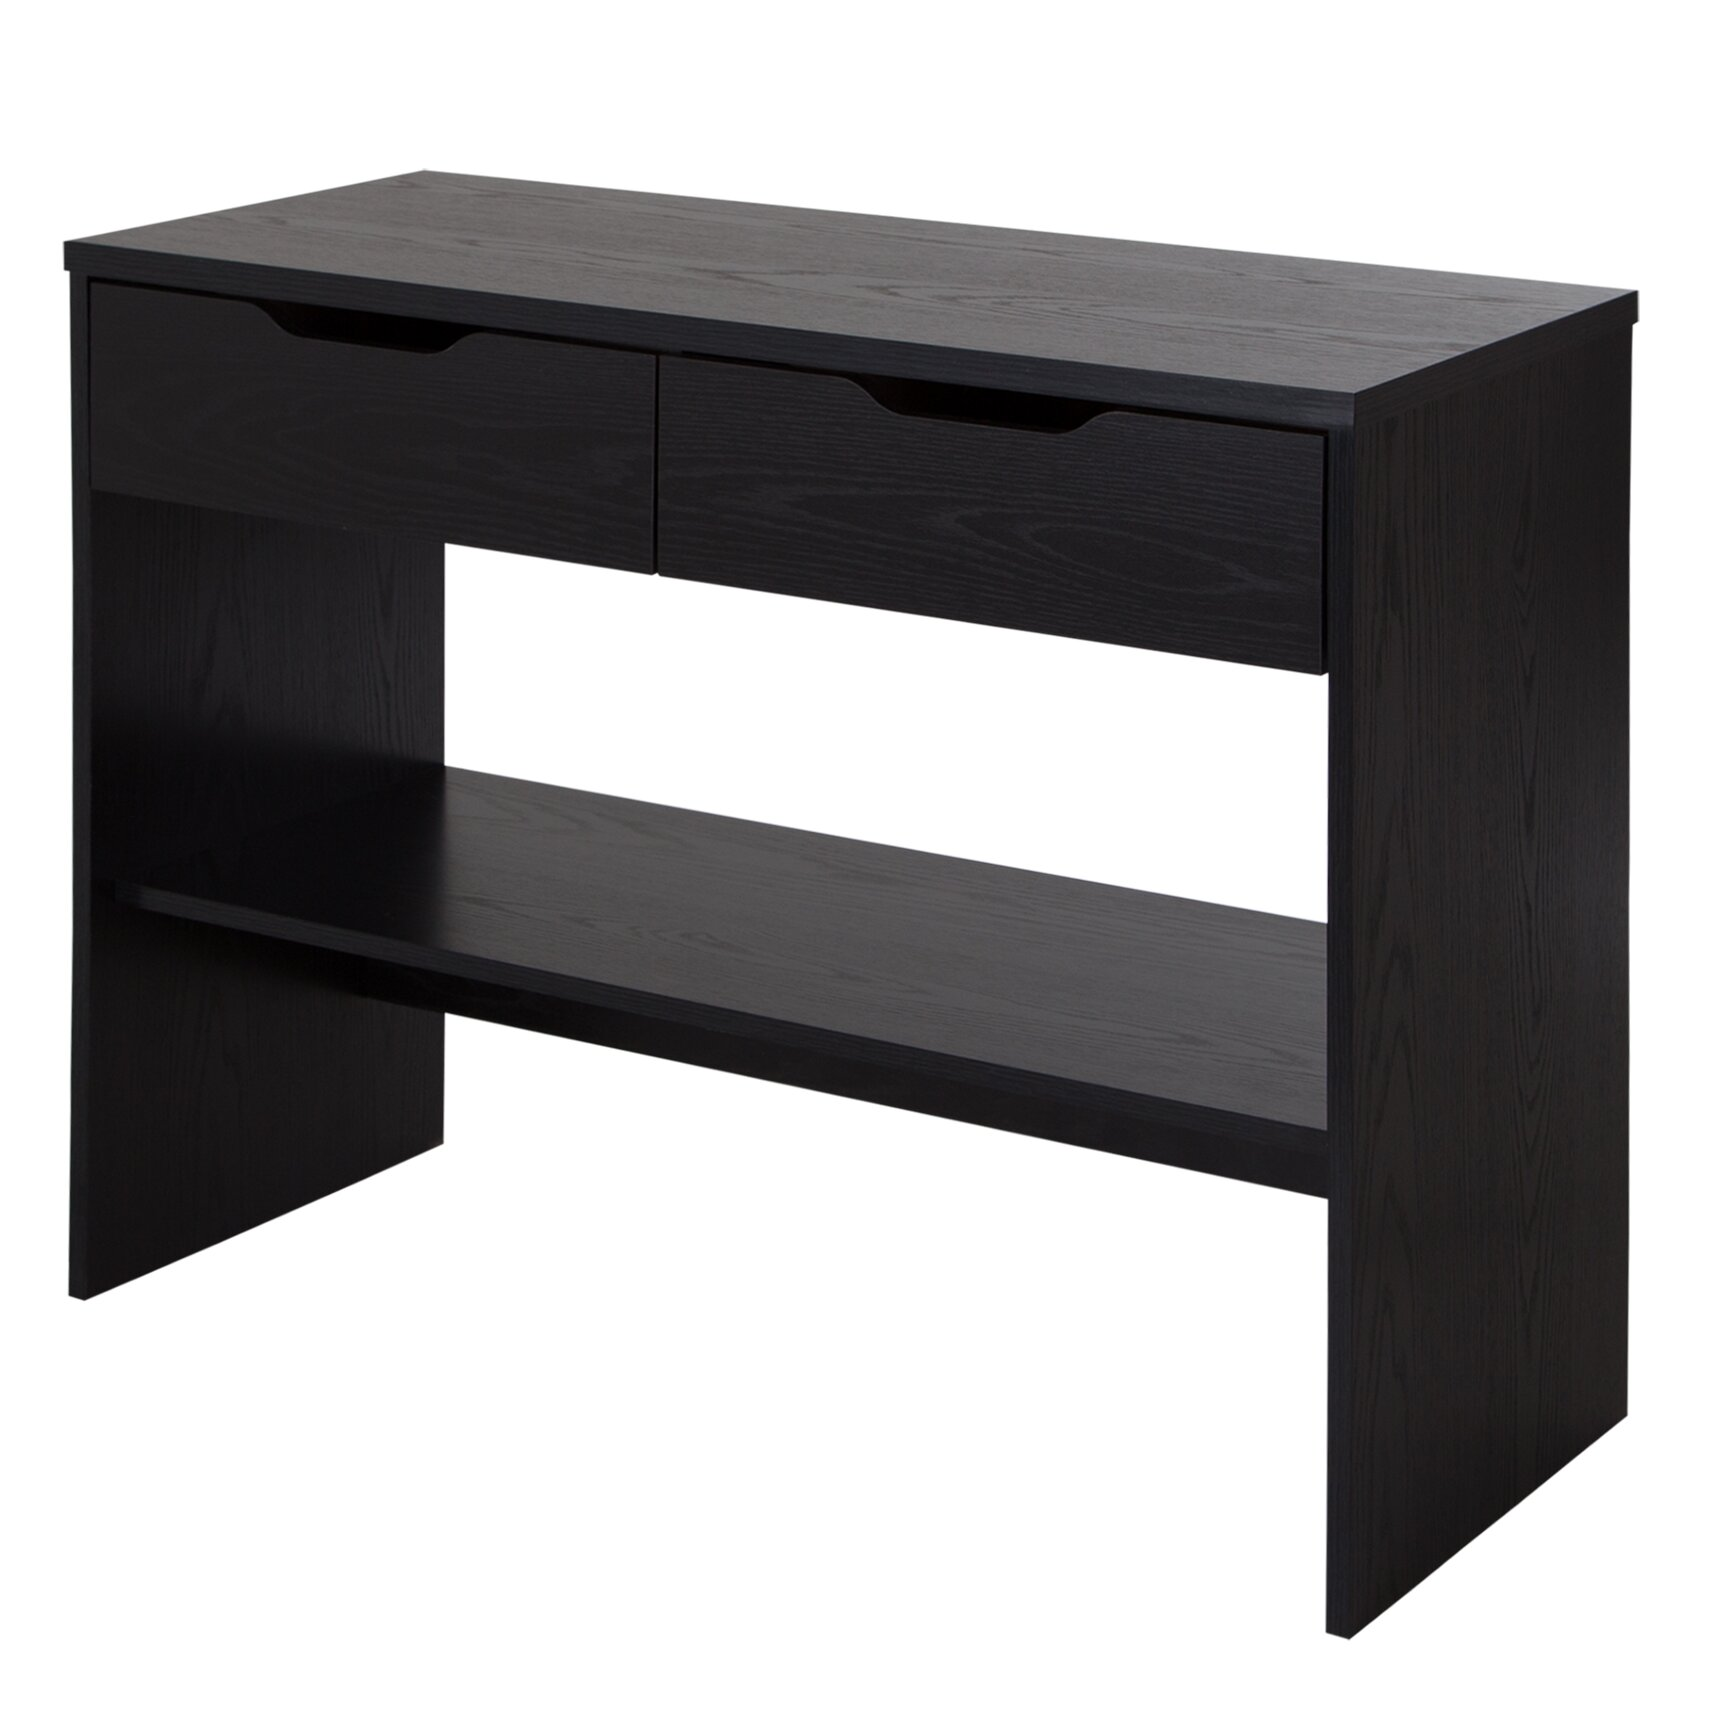 29 Nouveau Table Pliable Hht5 Table Basse Coffre # Meuble Tv Centrakor